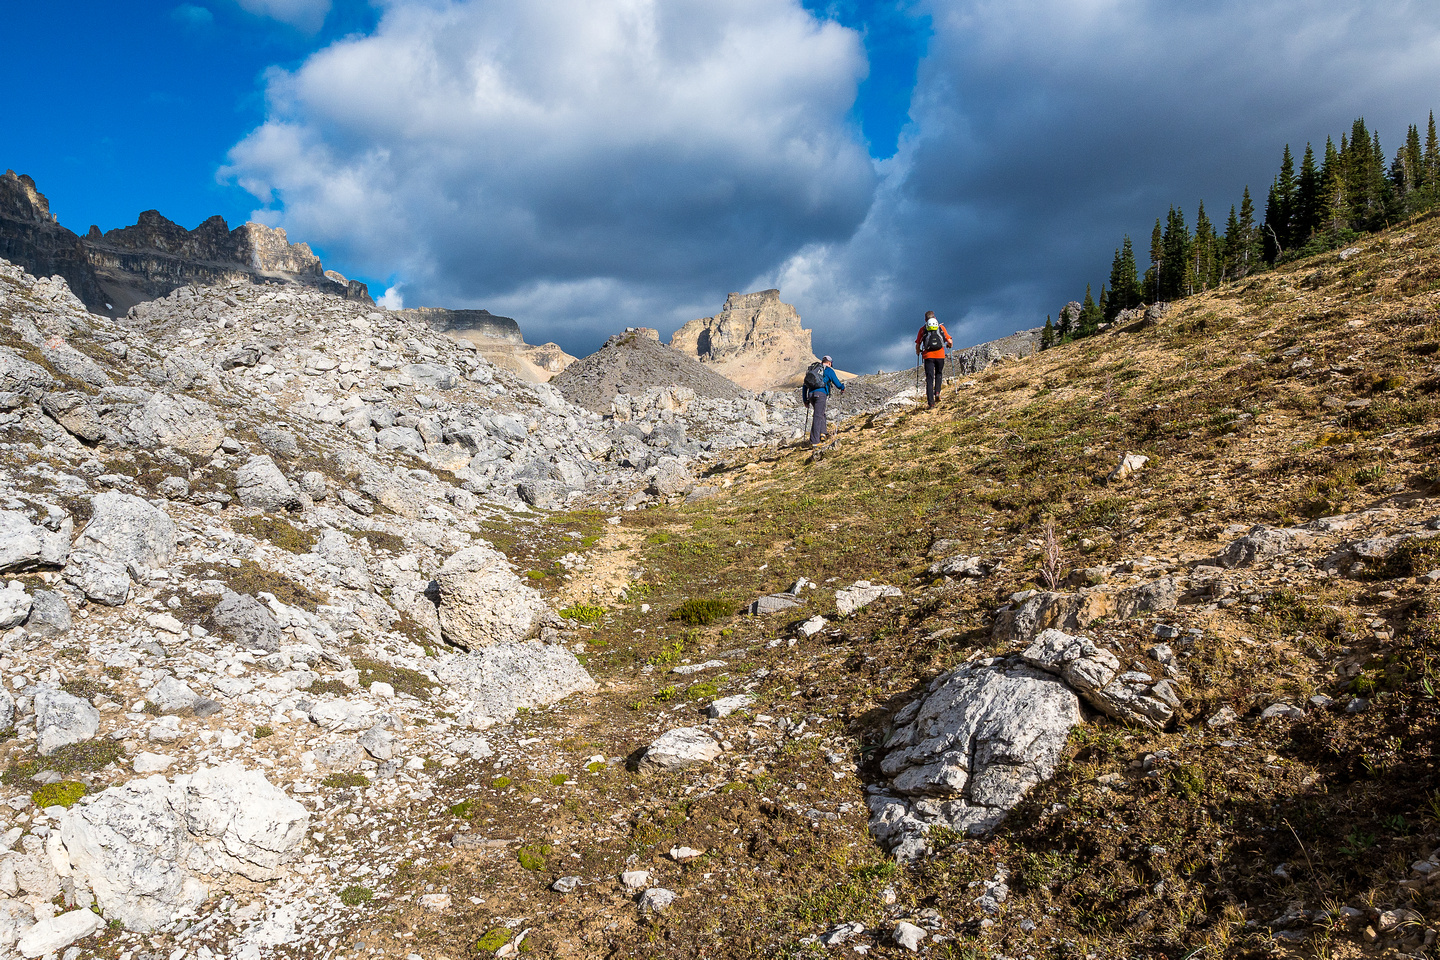 Breaking into the hanging valley - the NE peak of Dolomite at center.